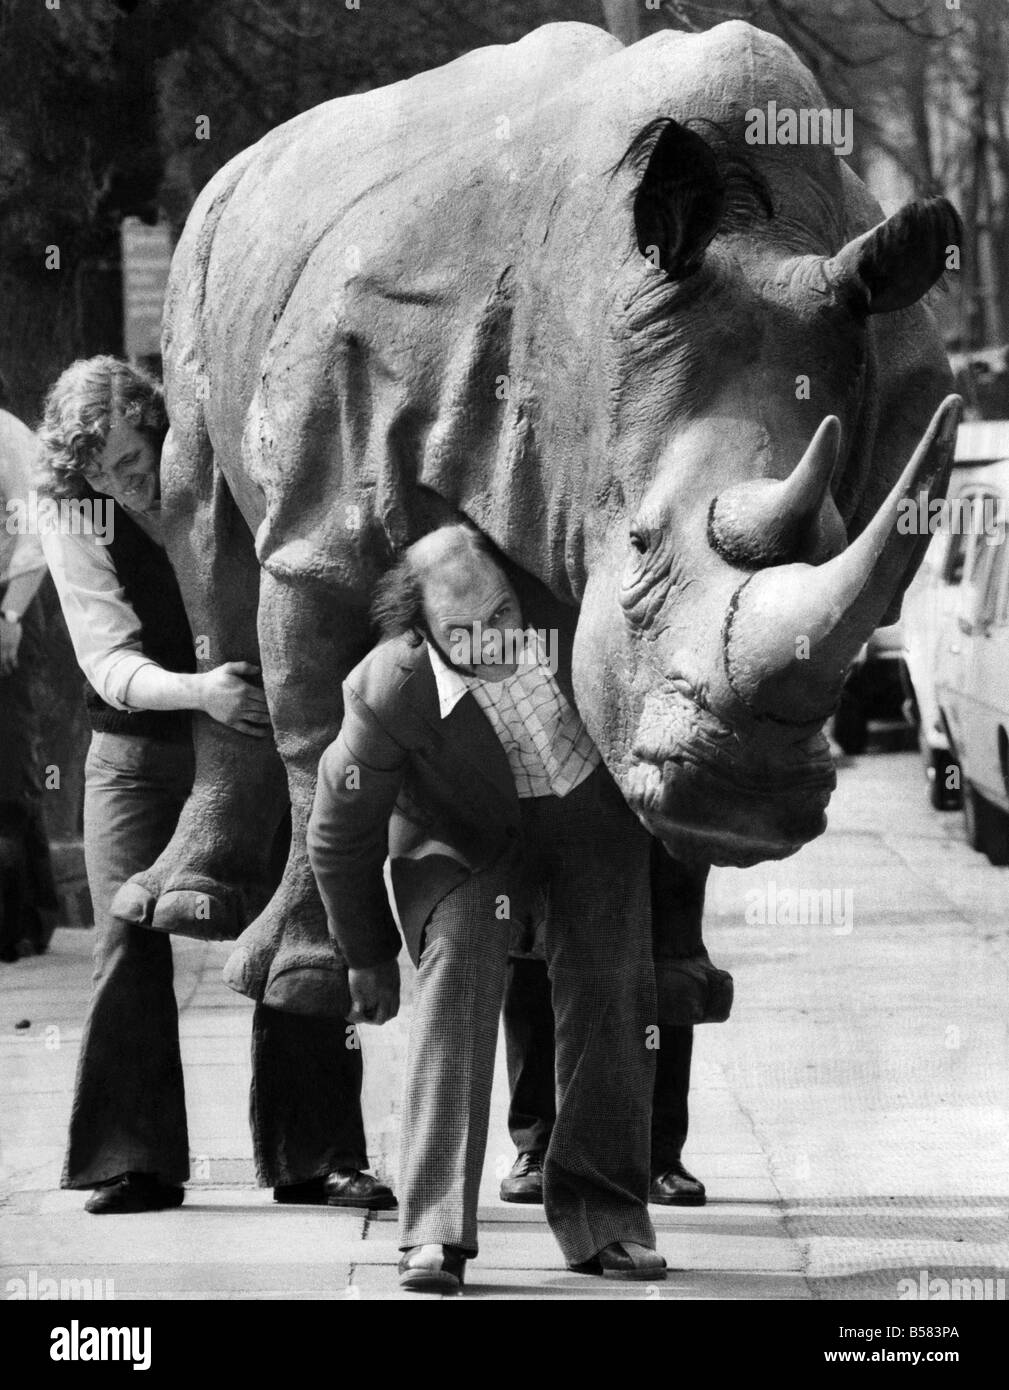 On Safari in London: A Rhino was seen running loose in London today. A life size, life like model of a Rhino made - Stock Image